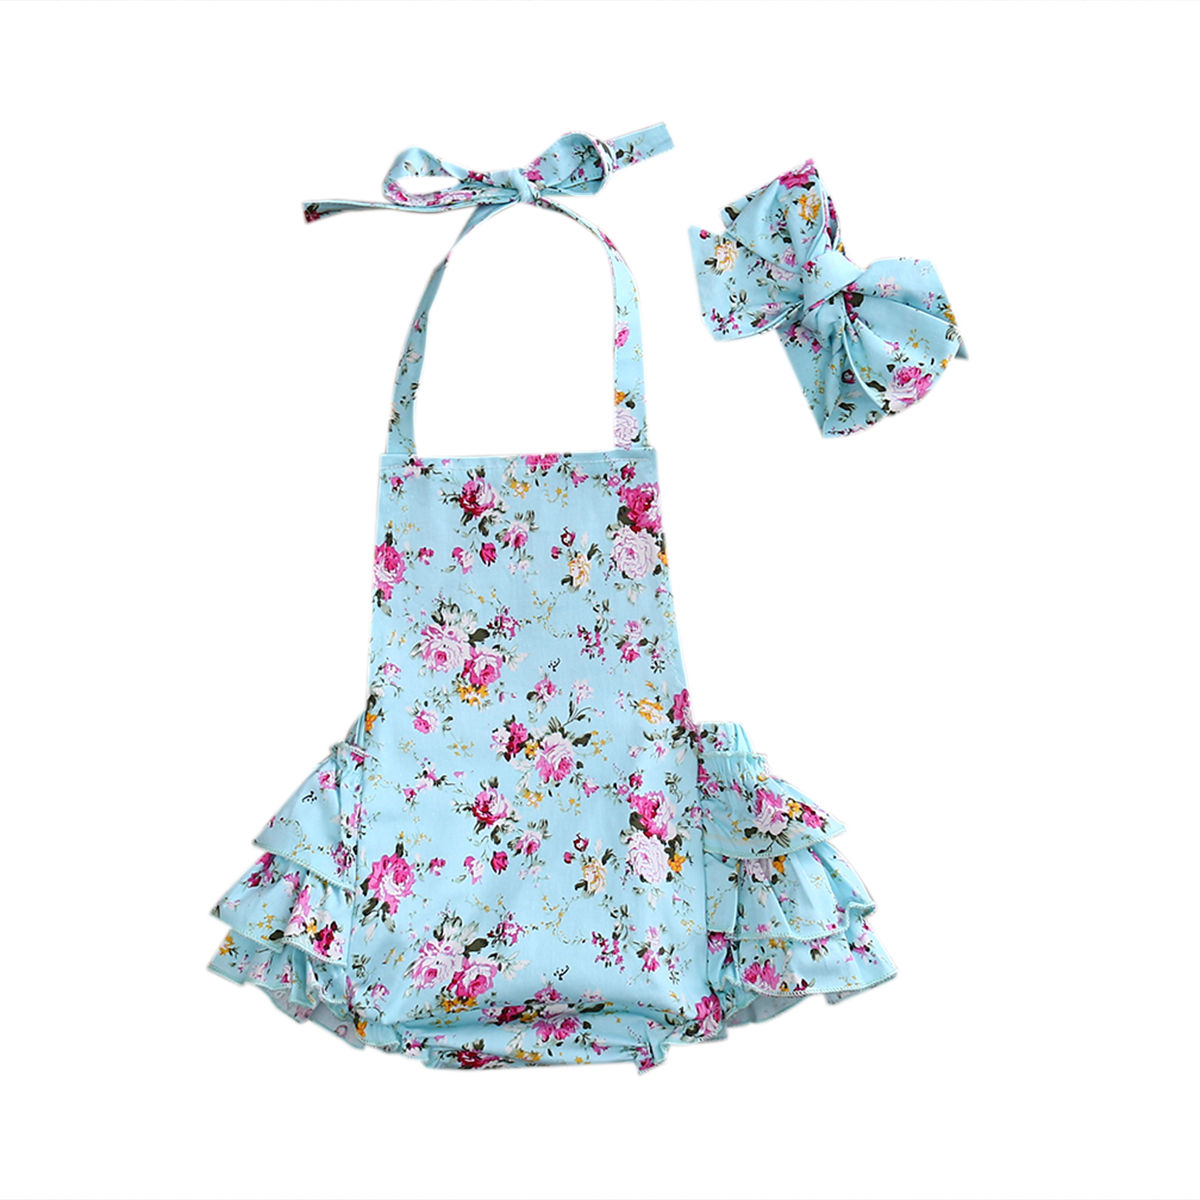 Summer Newborn Infant Baby Girls Floral Tiered Romper Jumpsuit Outfit Sunsuit Playsuit Belt Cotton Clothes newborn baby backless floral jumpsuit infant girls romper sleeveless outfit